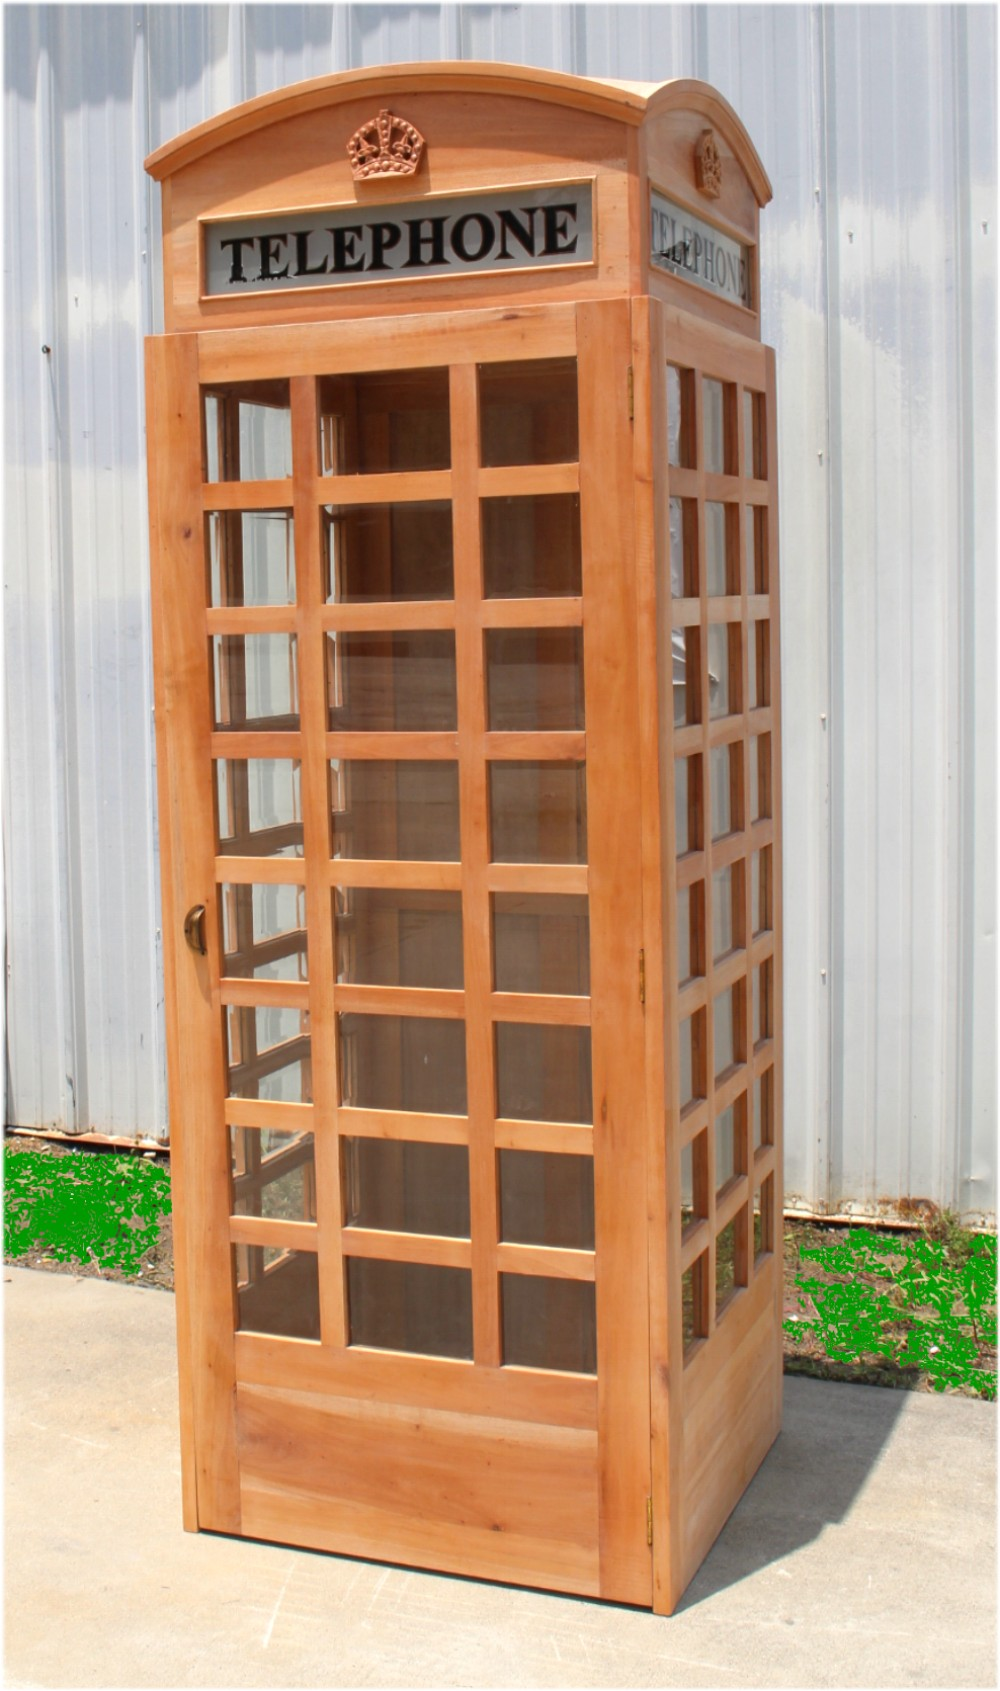 Unfinished Wooden Replica English British Telephone Booth